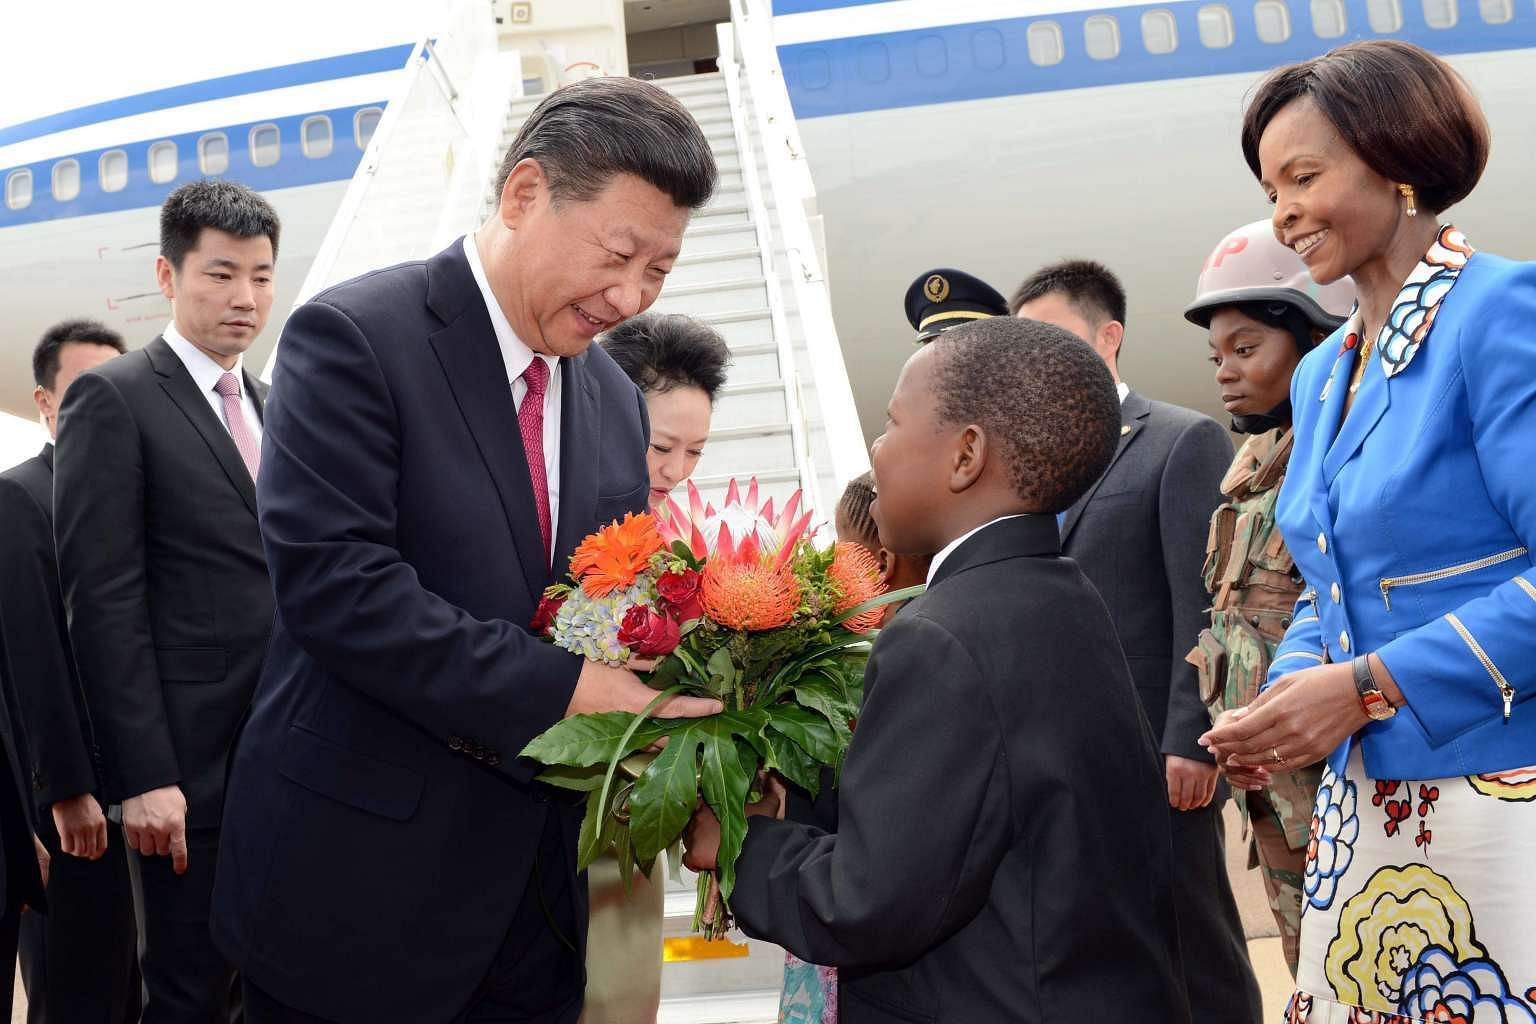 Chinas Xi Arrives In South Africa For Talks With Zuma Trade Summit